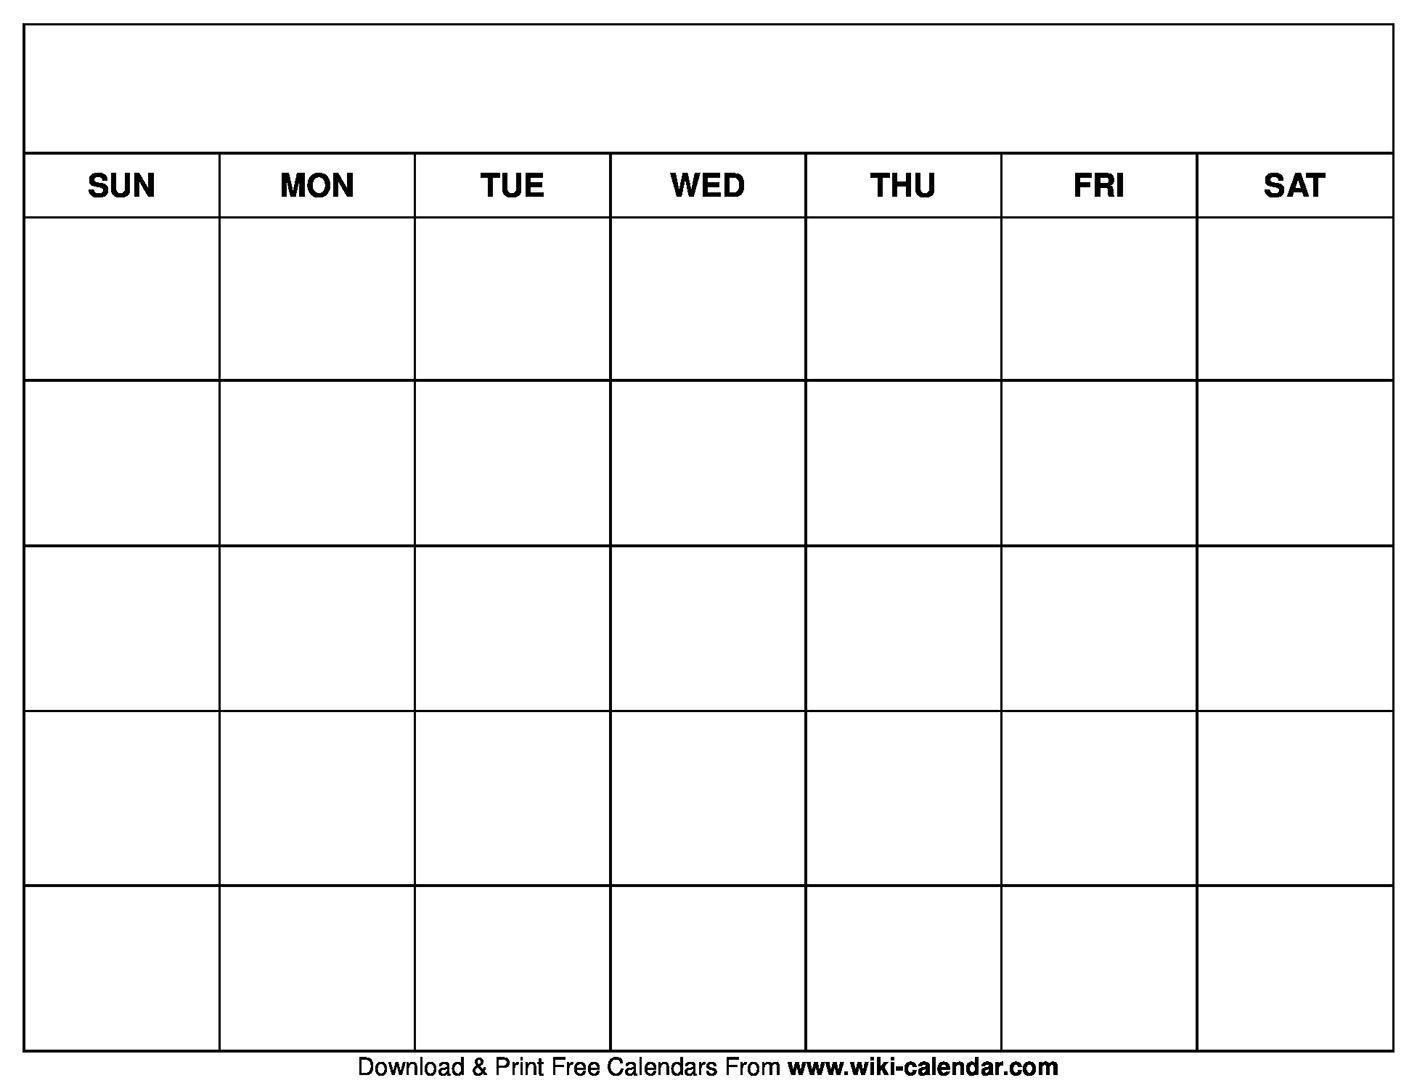 How To Free Printable Calendar Fill In In 2020 | Calender pertaining to Fill In Calendars